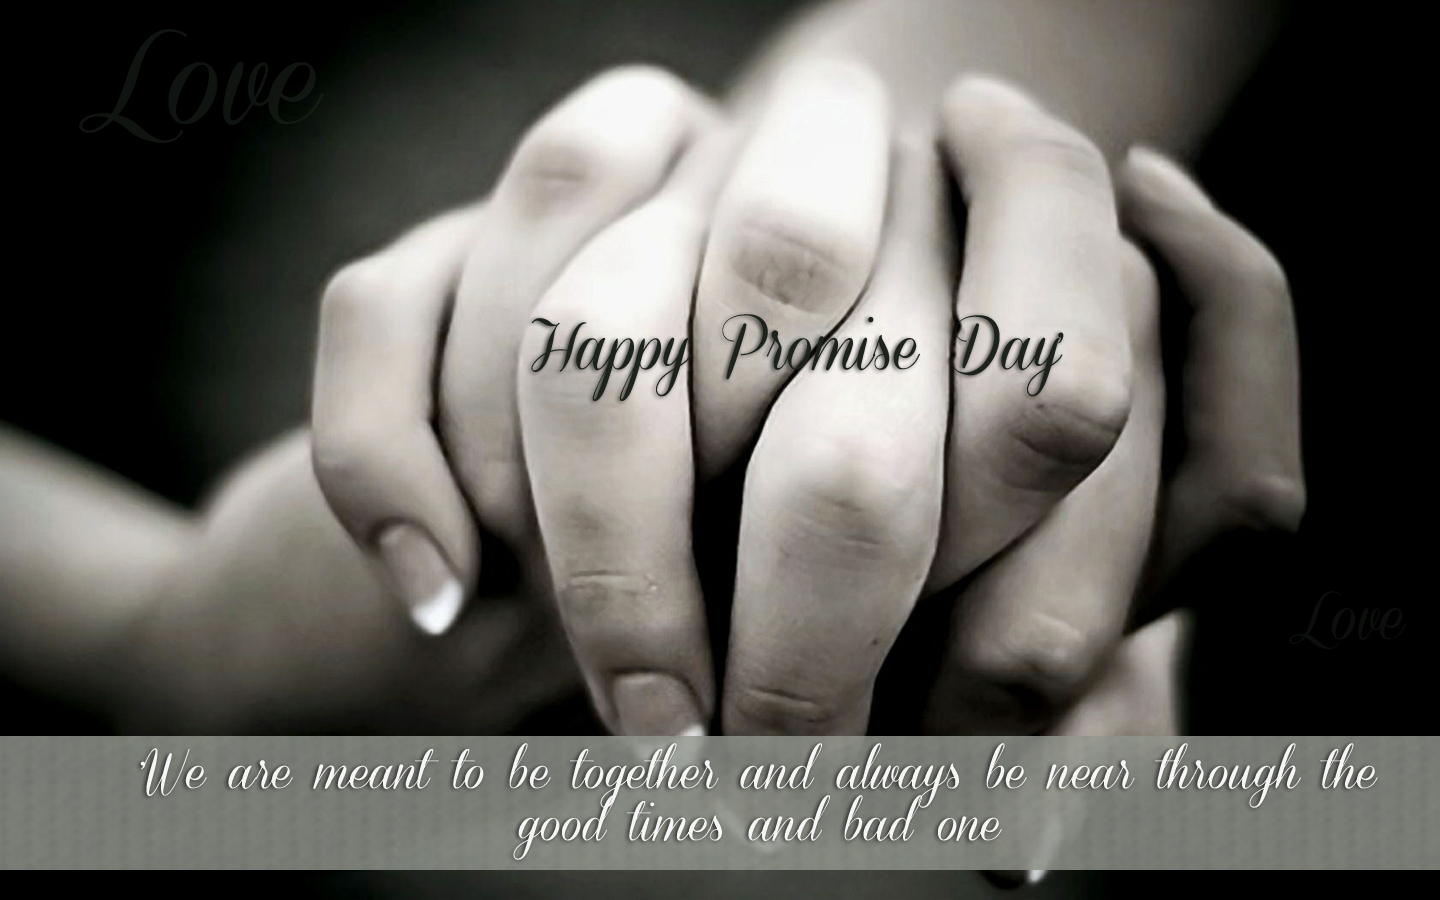 Happy Promise Day 2018 Quotes Wishes Messages Sms Whatsapp Status Dp